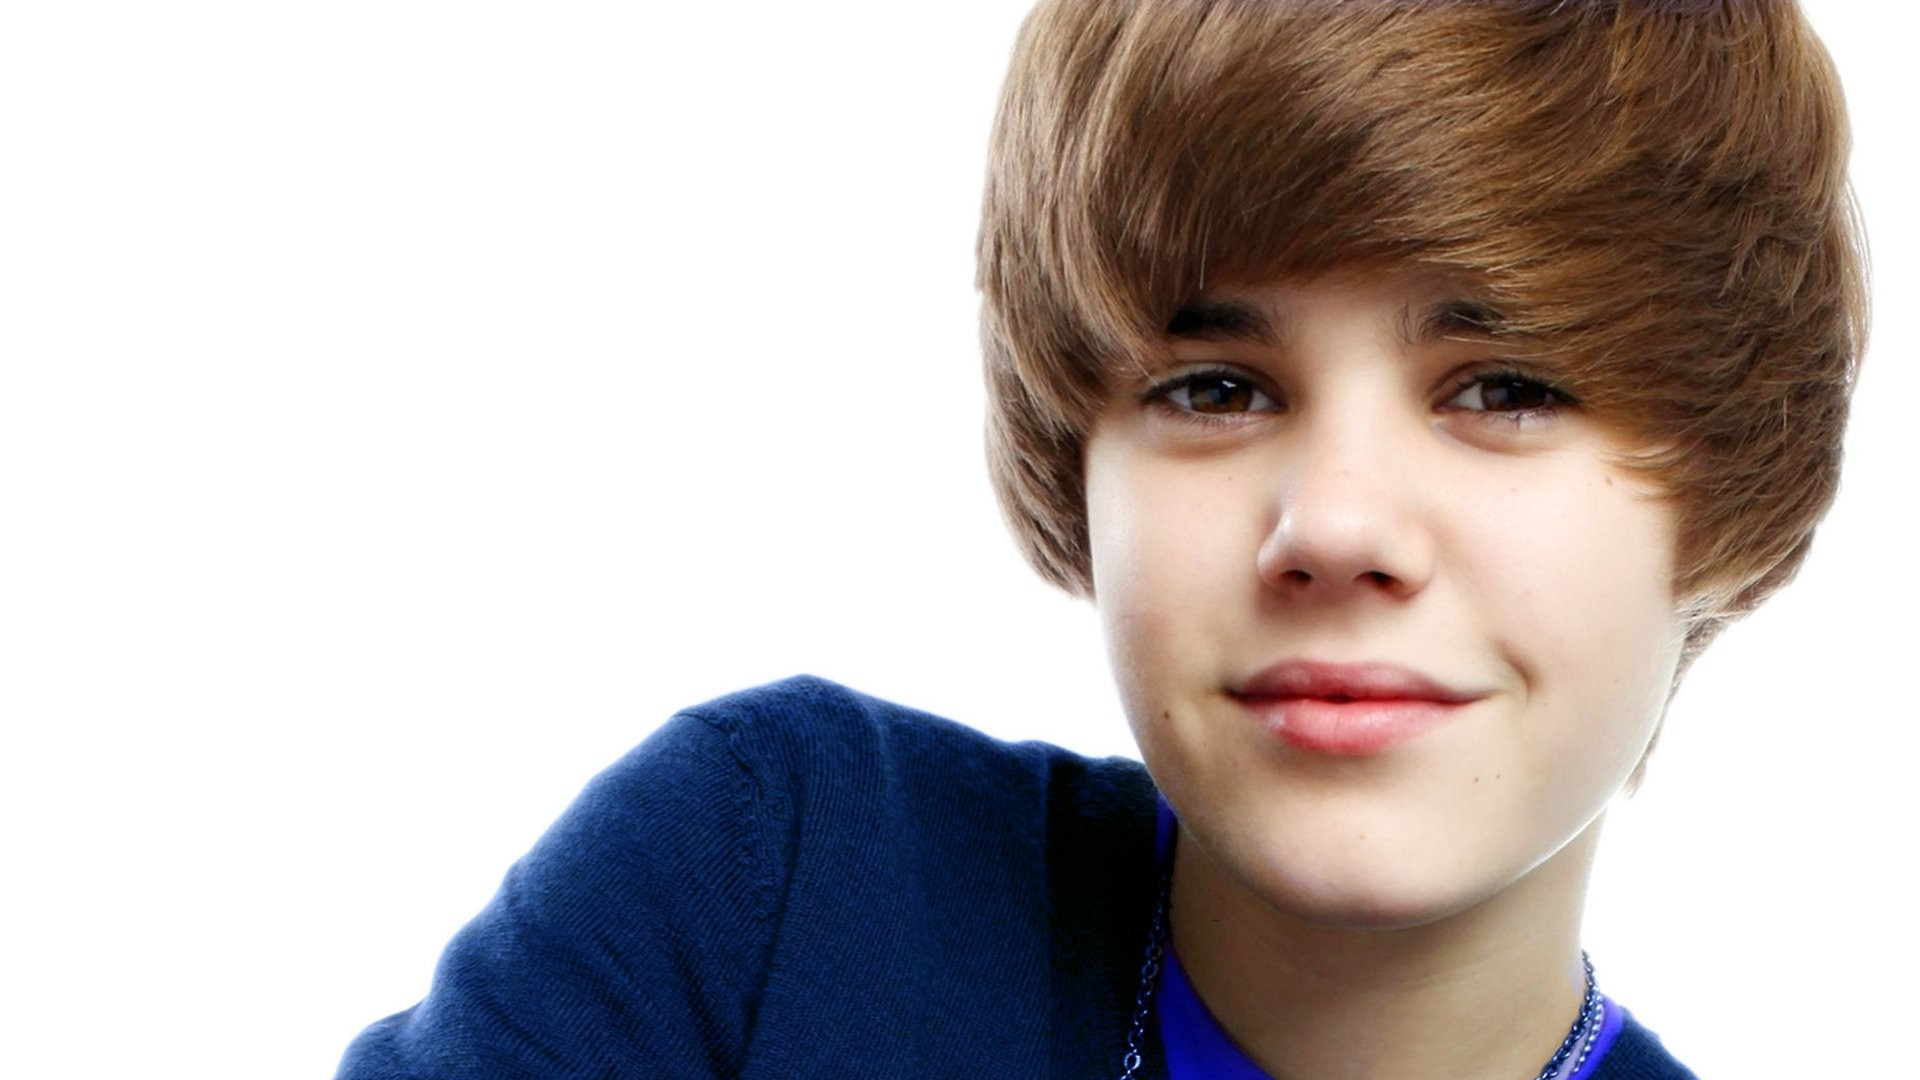 cute justin bieber wallpaper download #4183 wallpaper